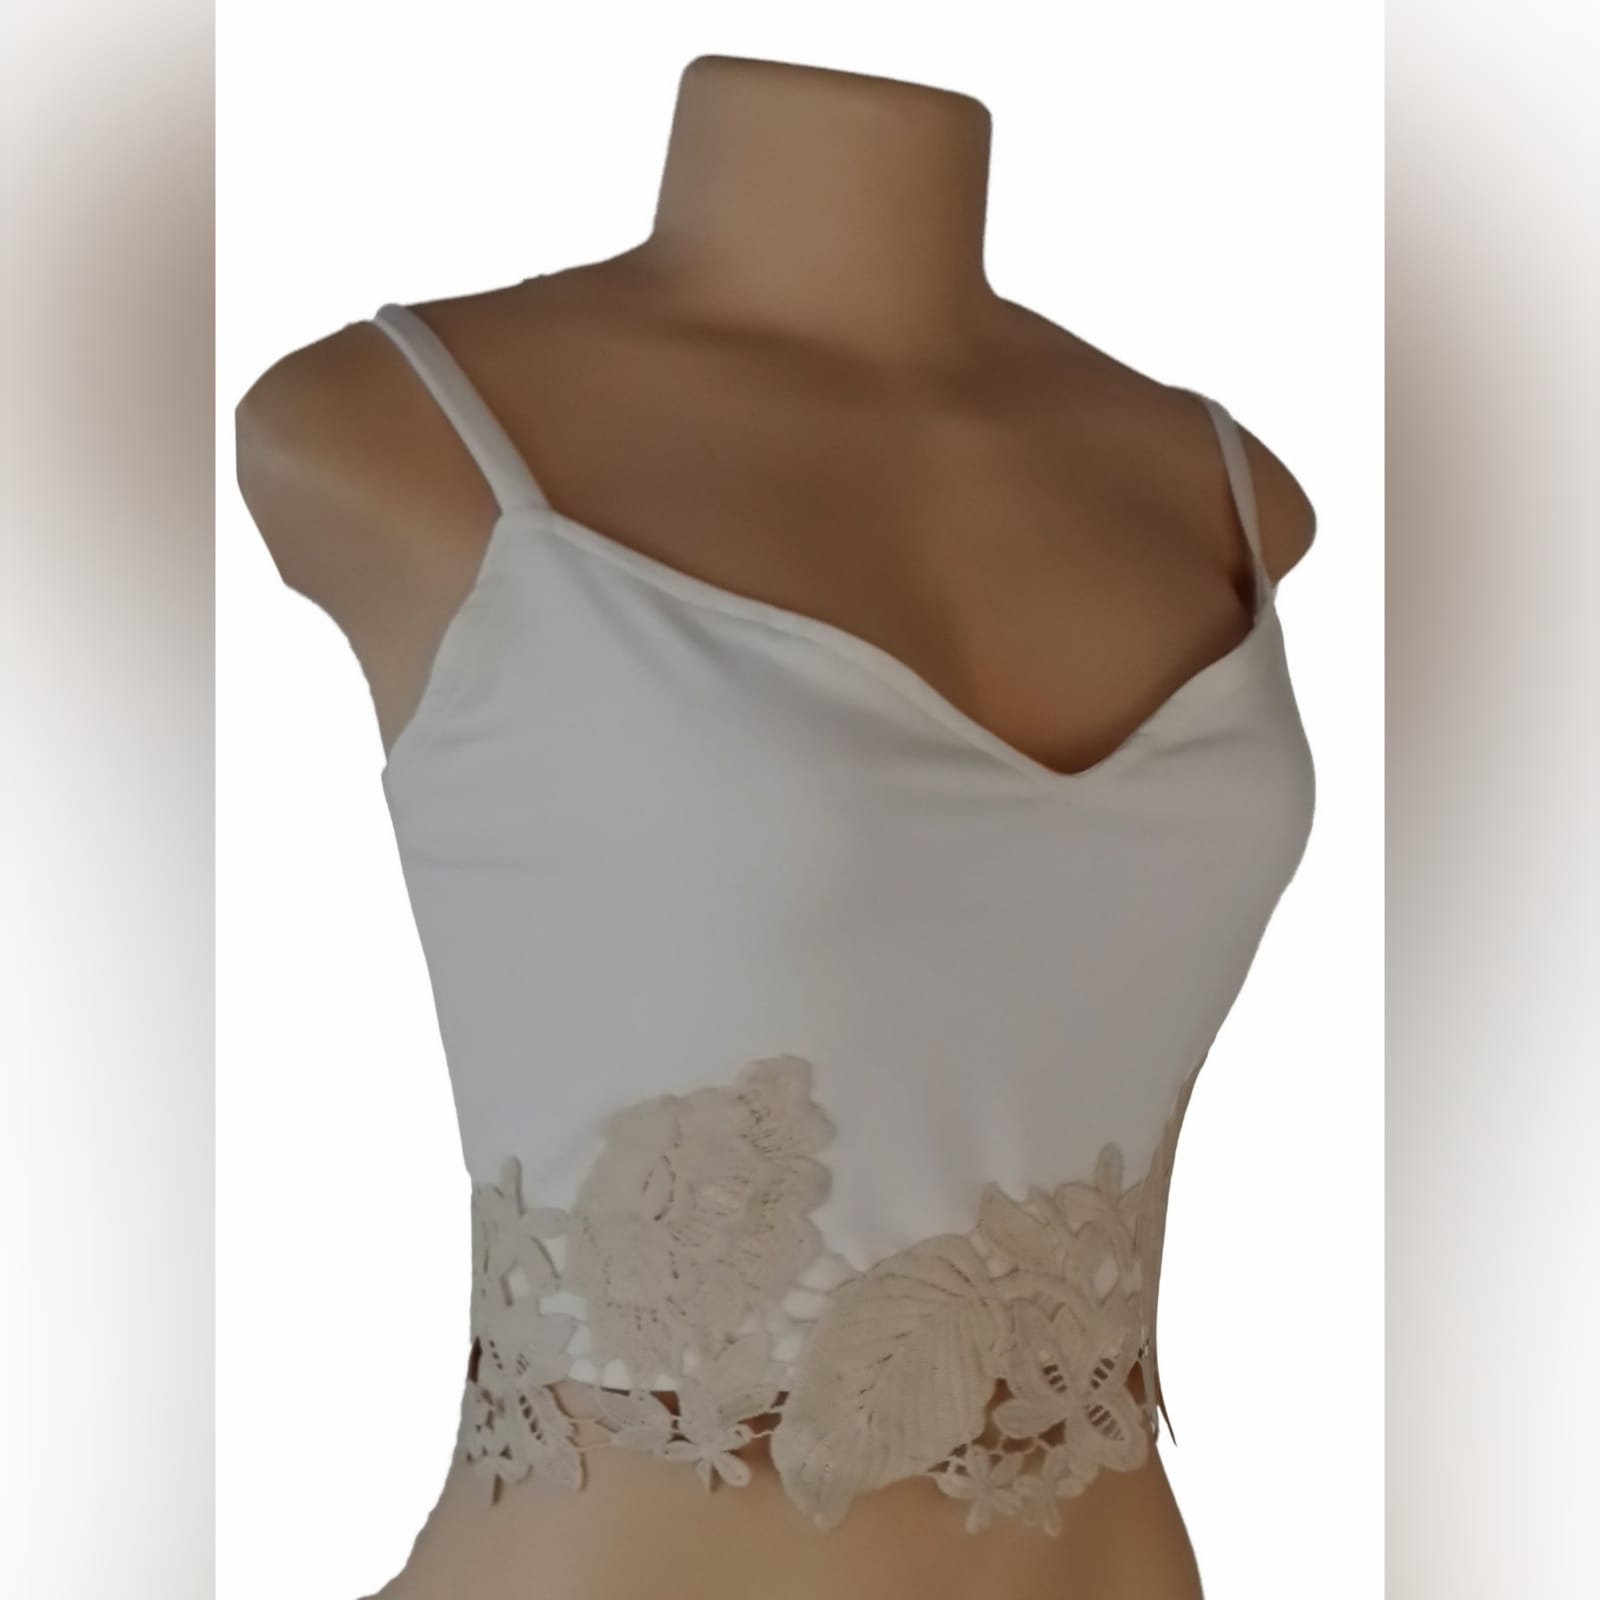 Cream and beige crop top 1 cream and beige crop top with a sweetheart neckline and lace hem detail